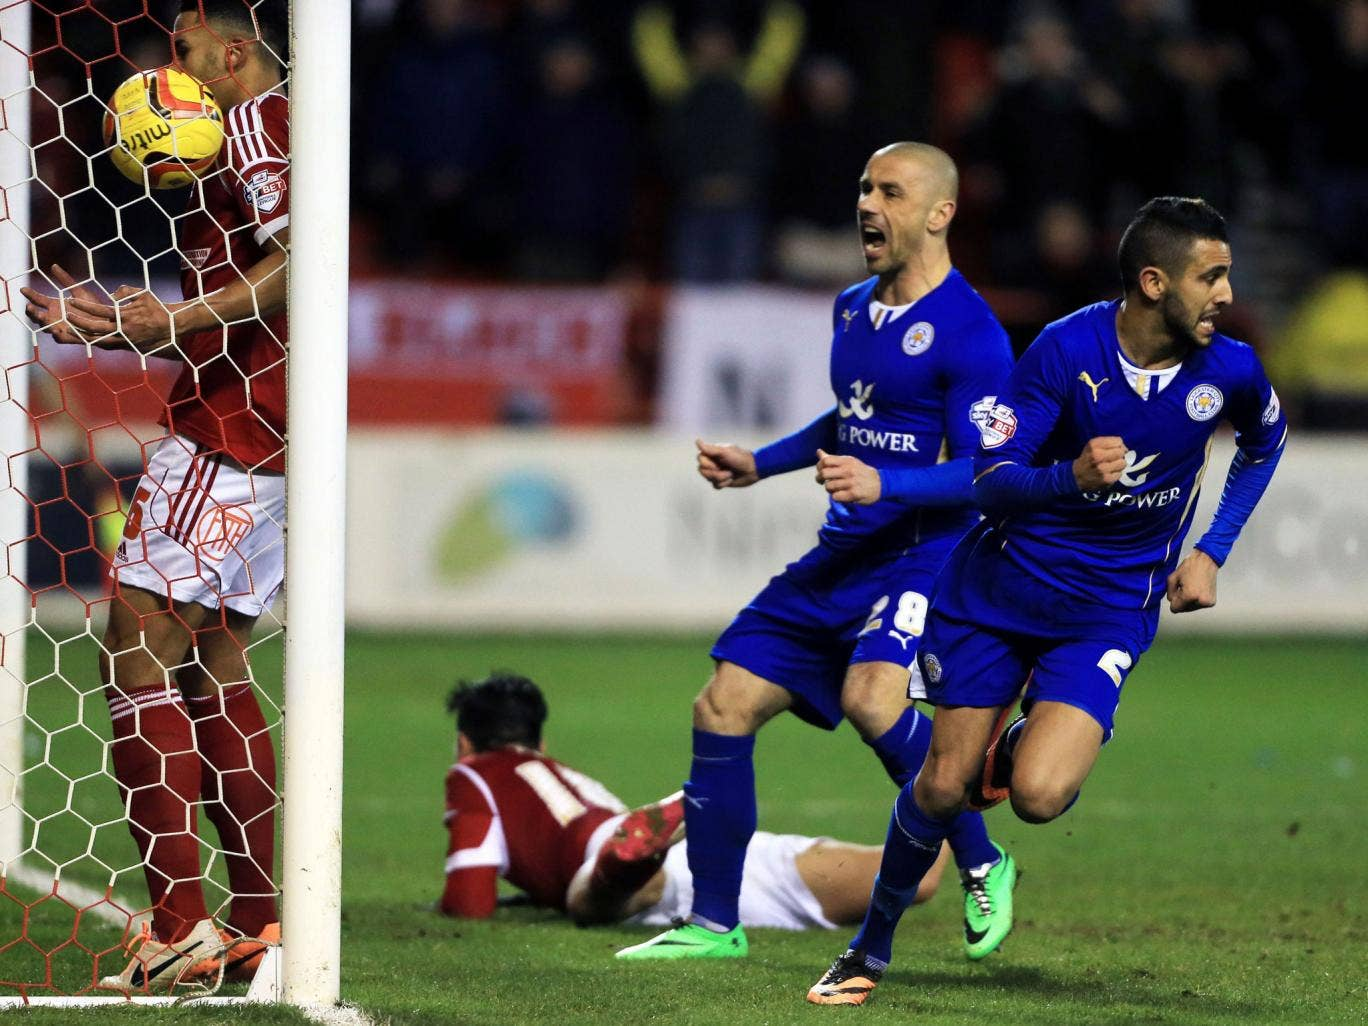 Leicester City's Riyad Mahrez, right, celebrates scoring the equaliser goal on the rebound from Kevin Phillips missed penalty during 2.2 draw against Nottingham Forest